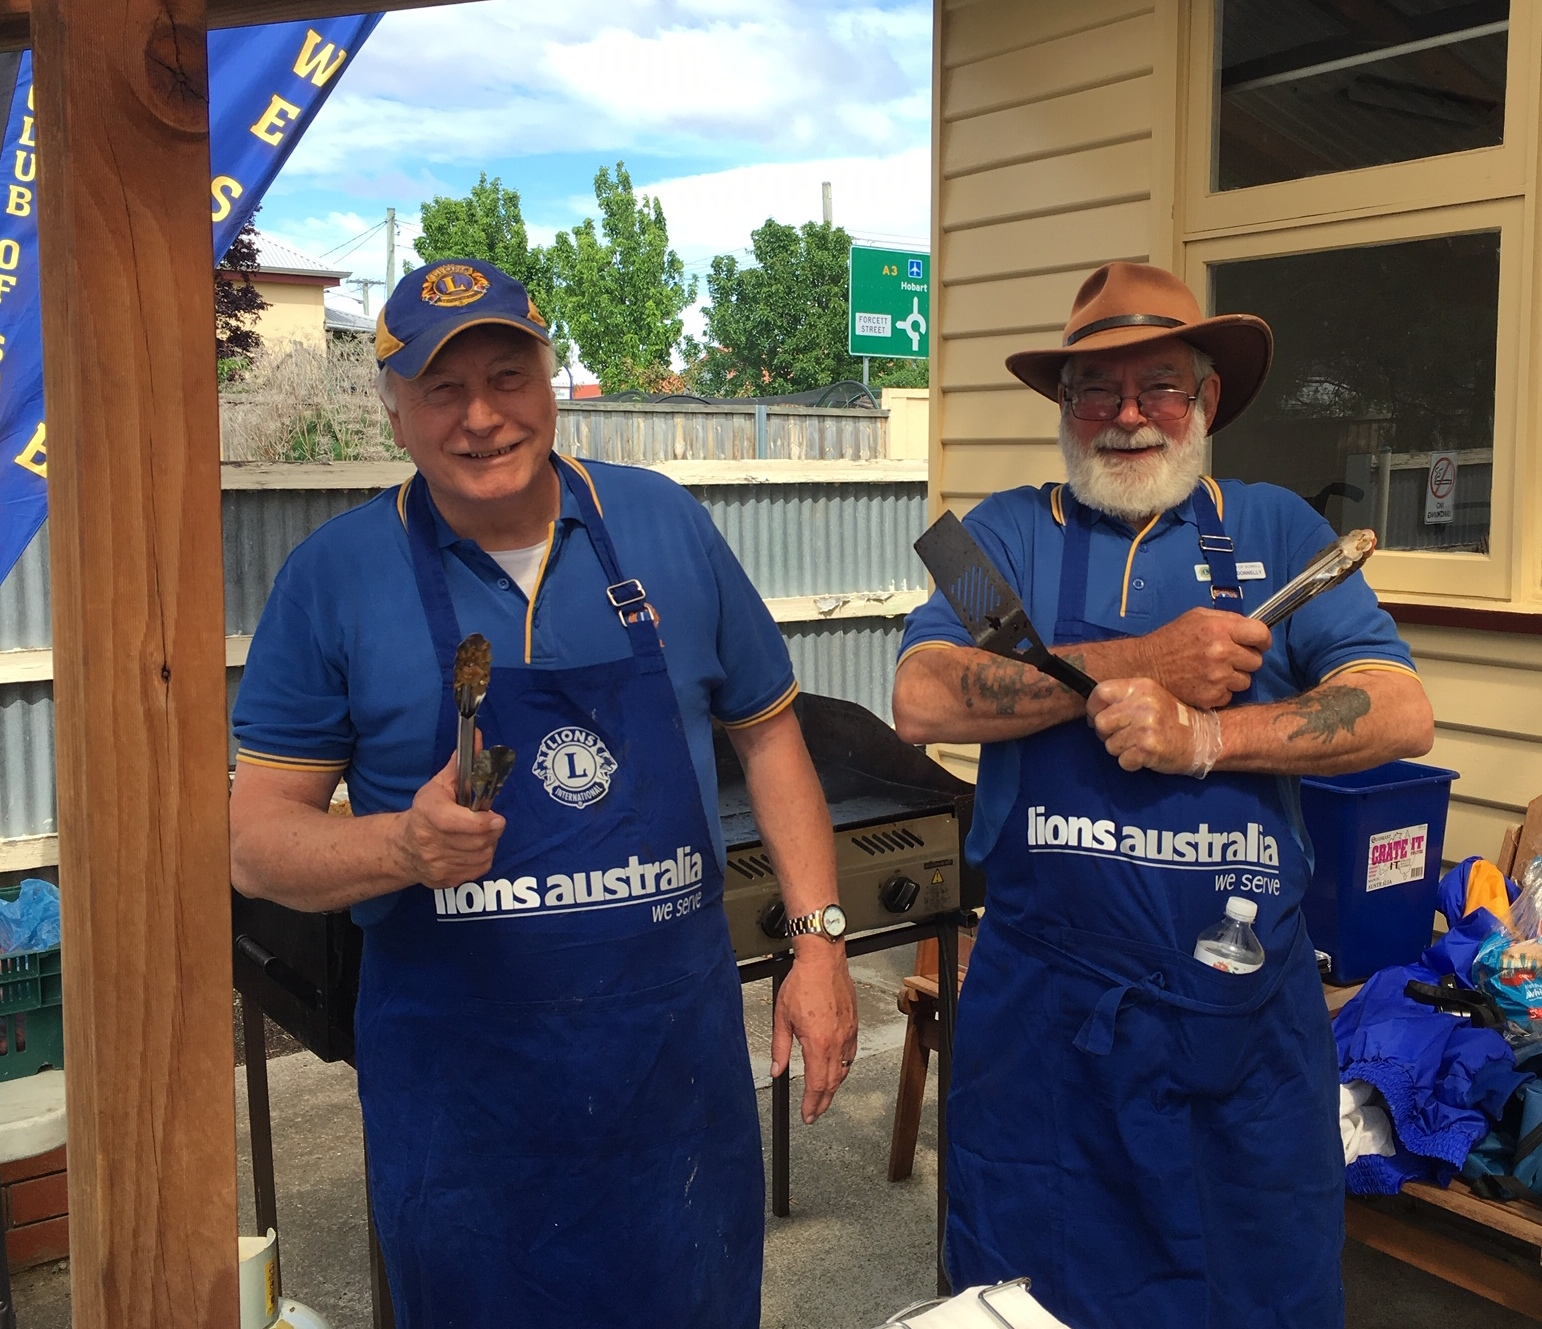 BBQ legends from the Lions Club of Sorell